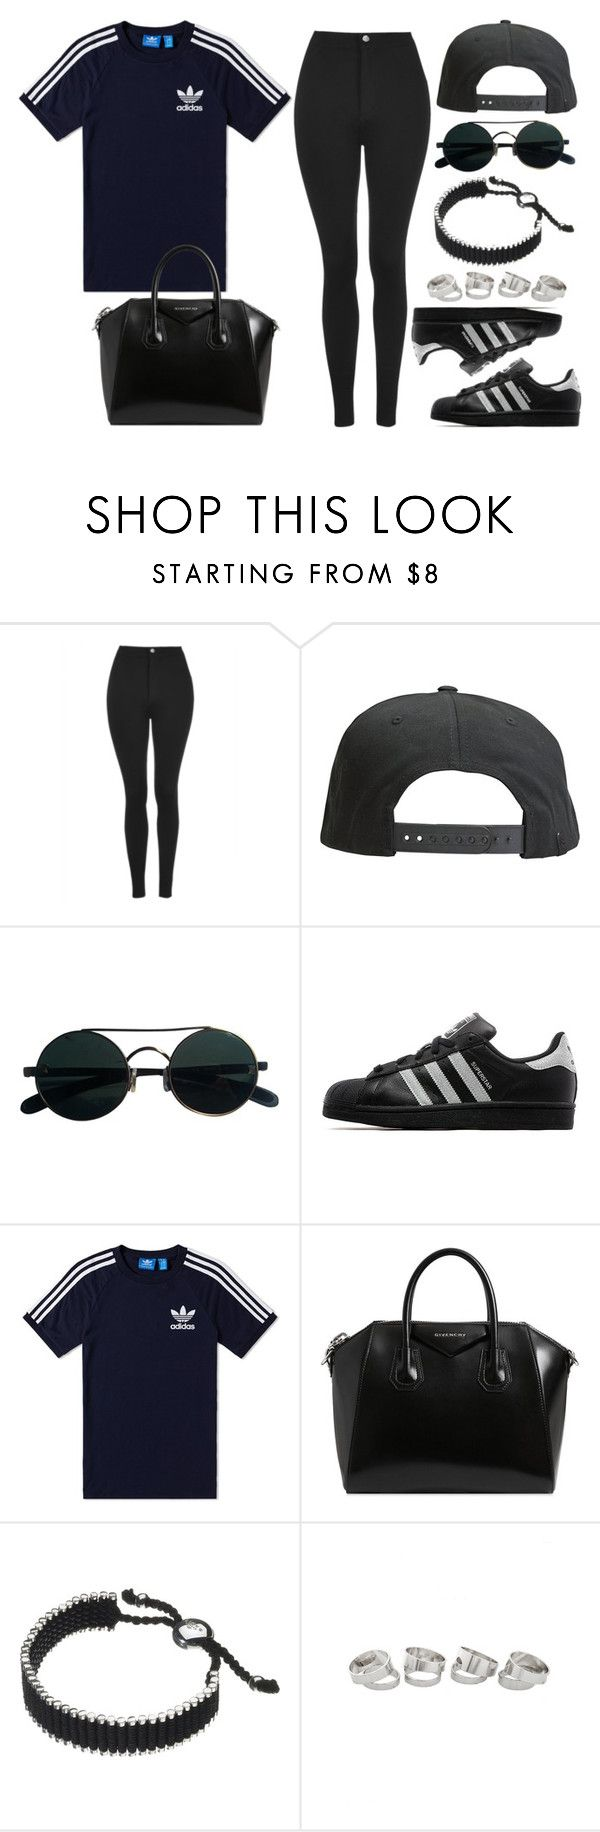 """Style #11224"" by vany-alvarado ❤ liked on Polyvore featuring Topshop, Tavik Swimwear, adidas Originals, adidas, Givenchy and Links of London"